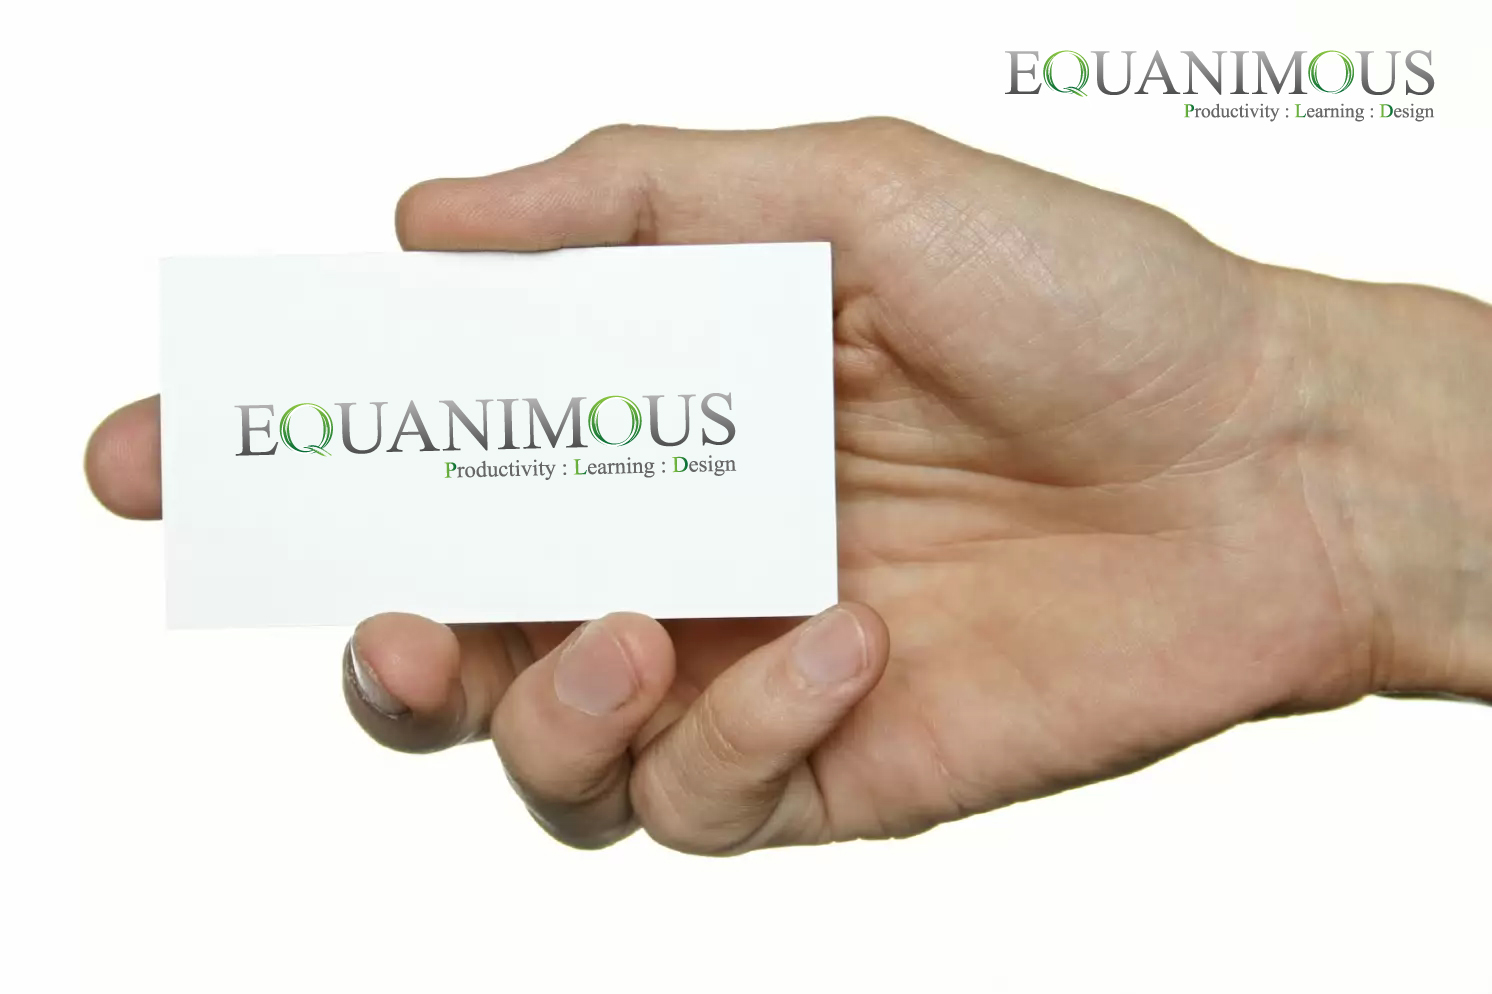 Logo Design by 3draw - Entry No. 425 in the Logo Design Contest Logo Design : EQUANIMOUS : Productivity | Learning | Design.